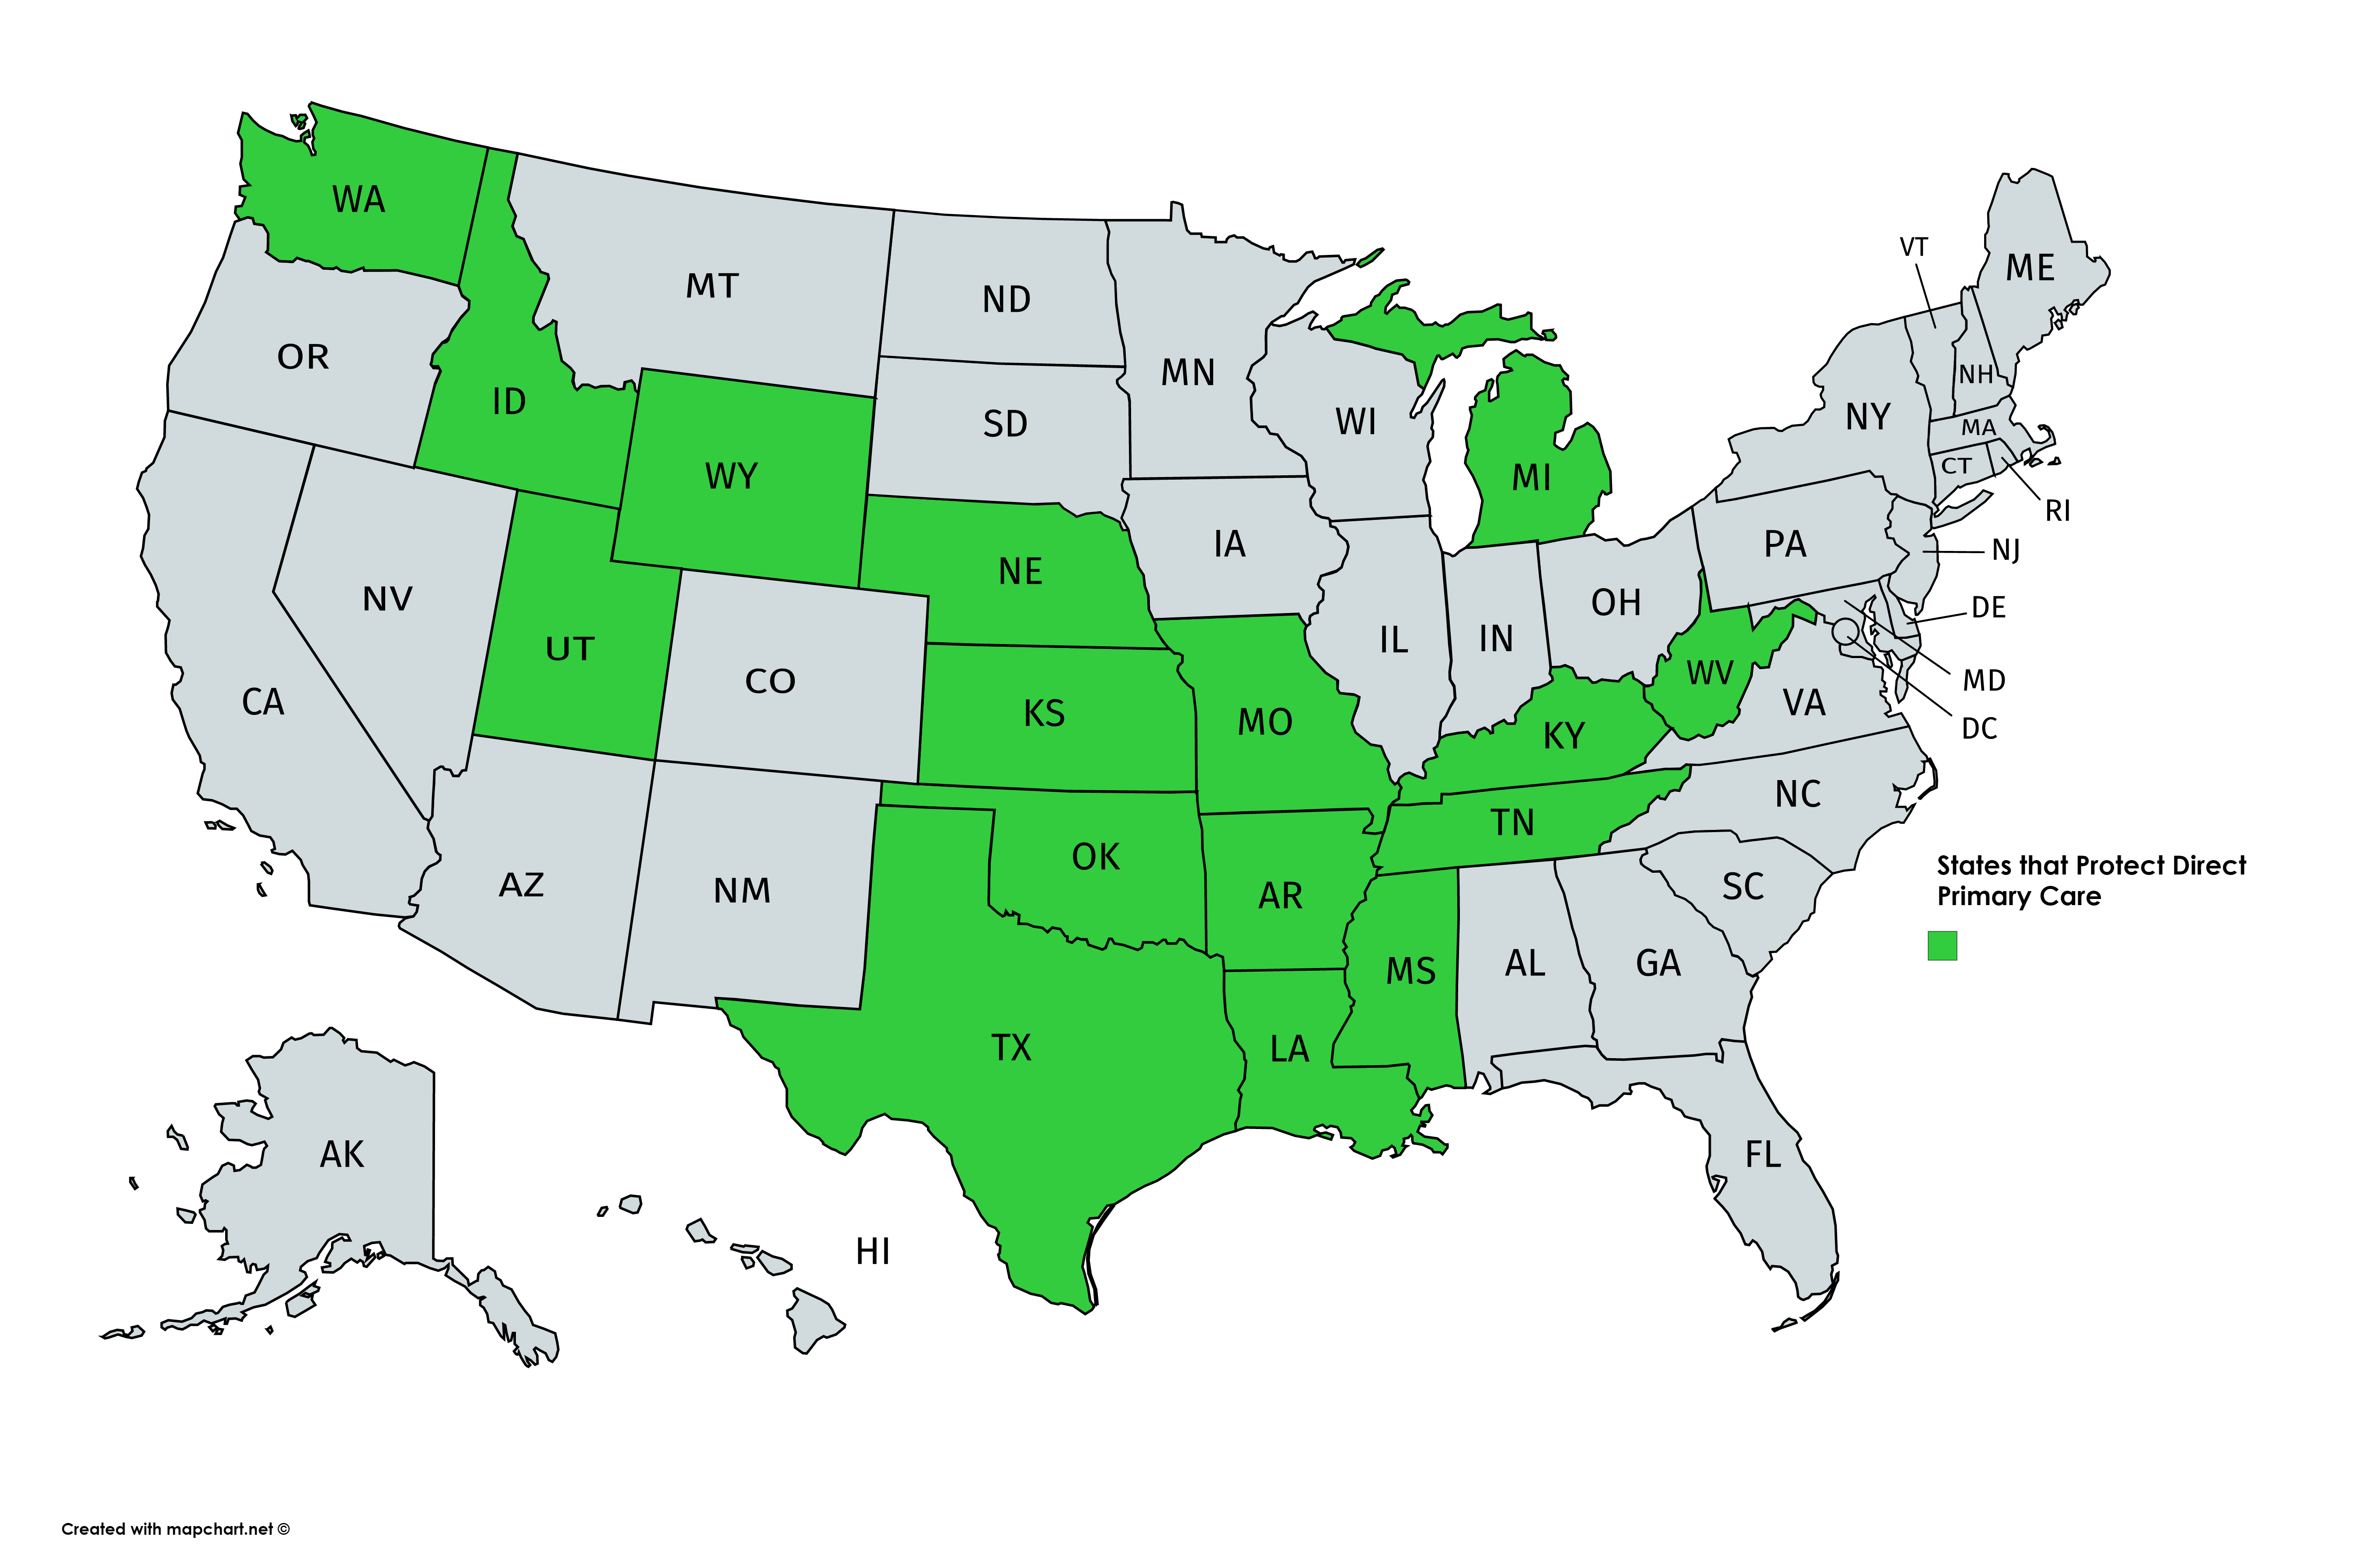 States that Protect Direct Primary Care